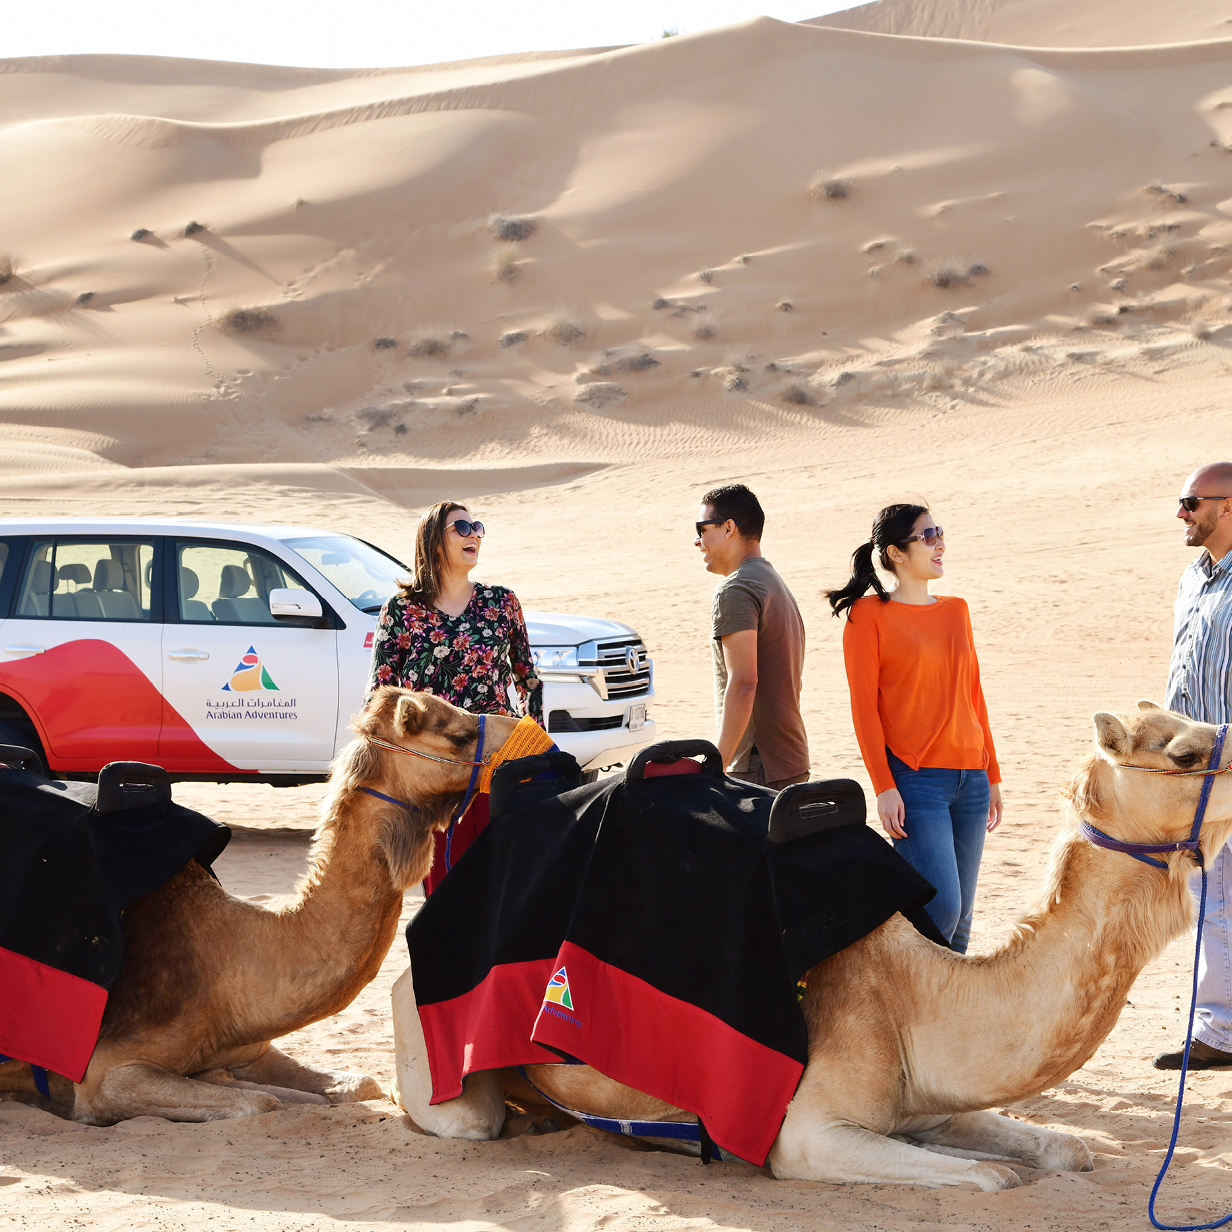 Morning Desert Safaris in Dubai - Shared Vehicle, , large